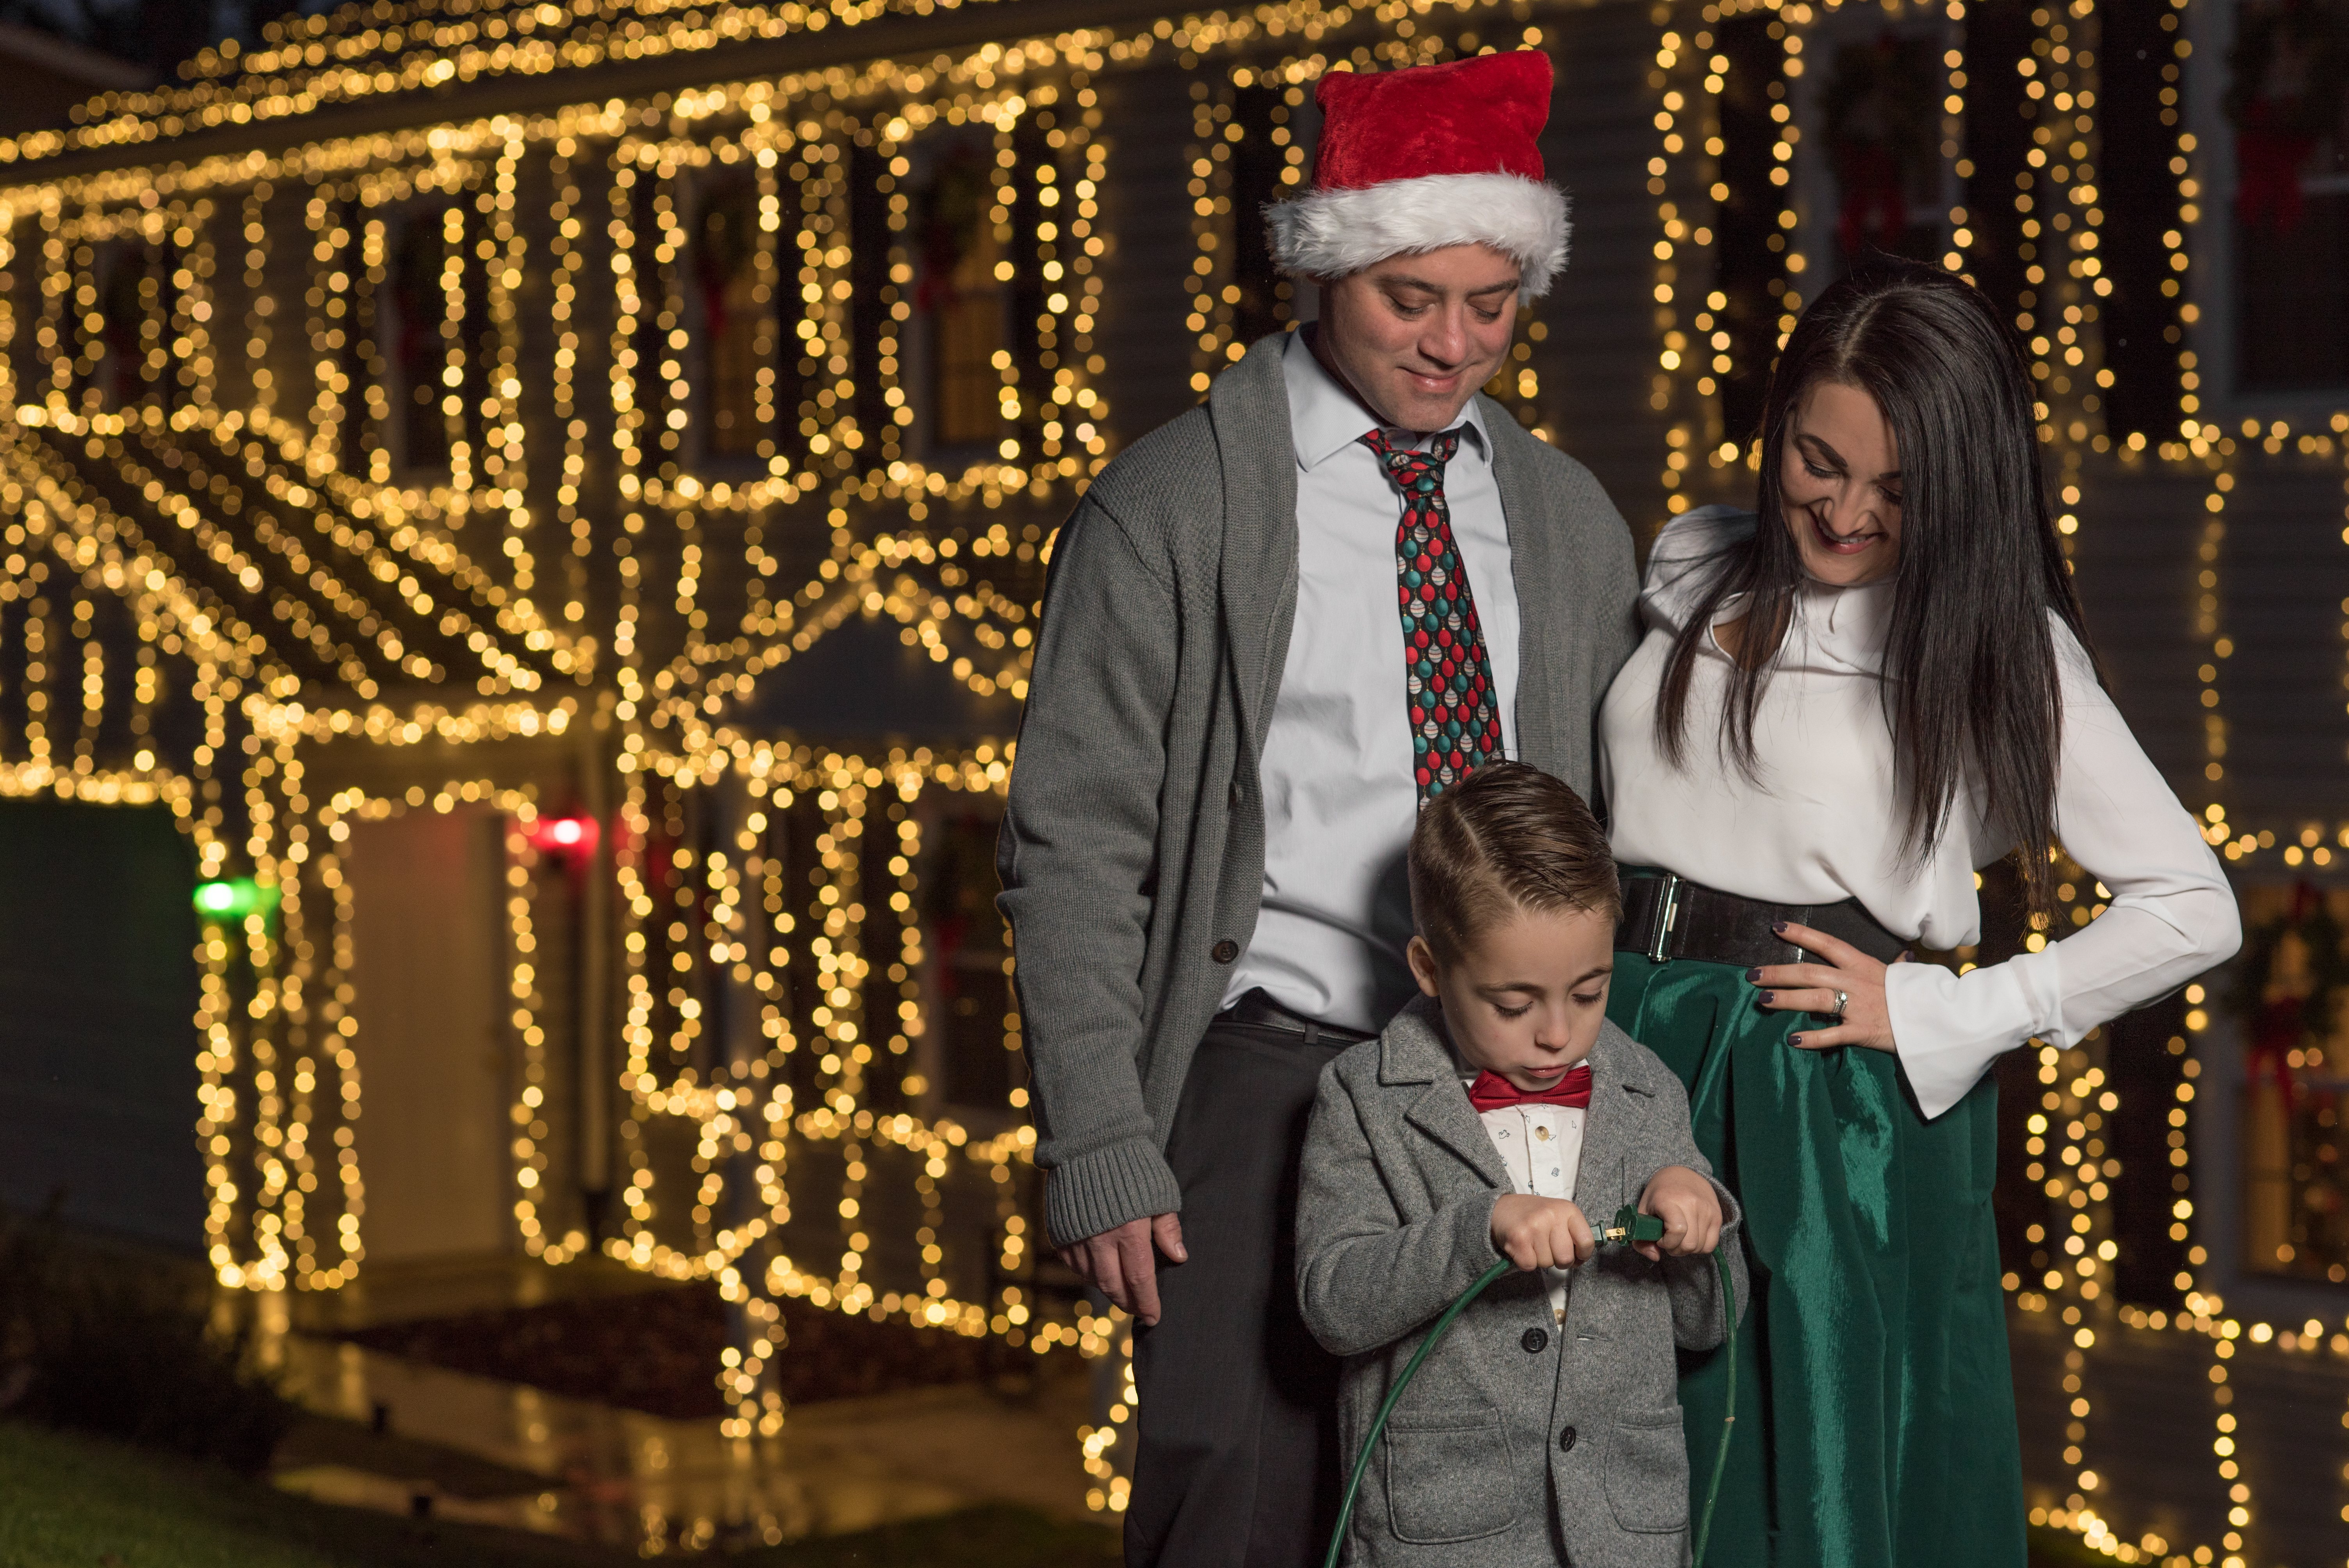 Craig Bowden puts in hours of work each year to bring his family and community a little extra Christmas joy. (Burns Exposures)